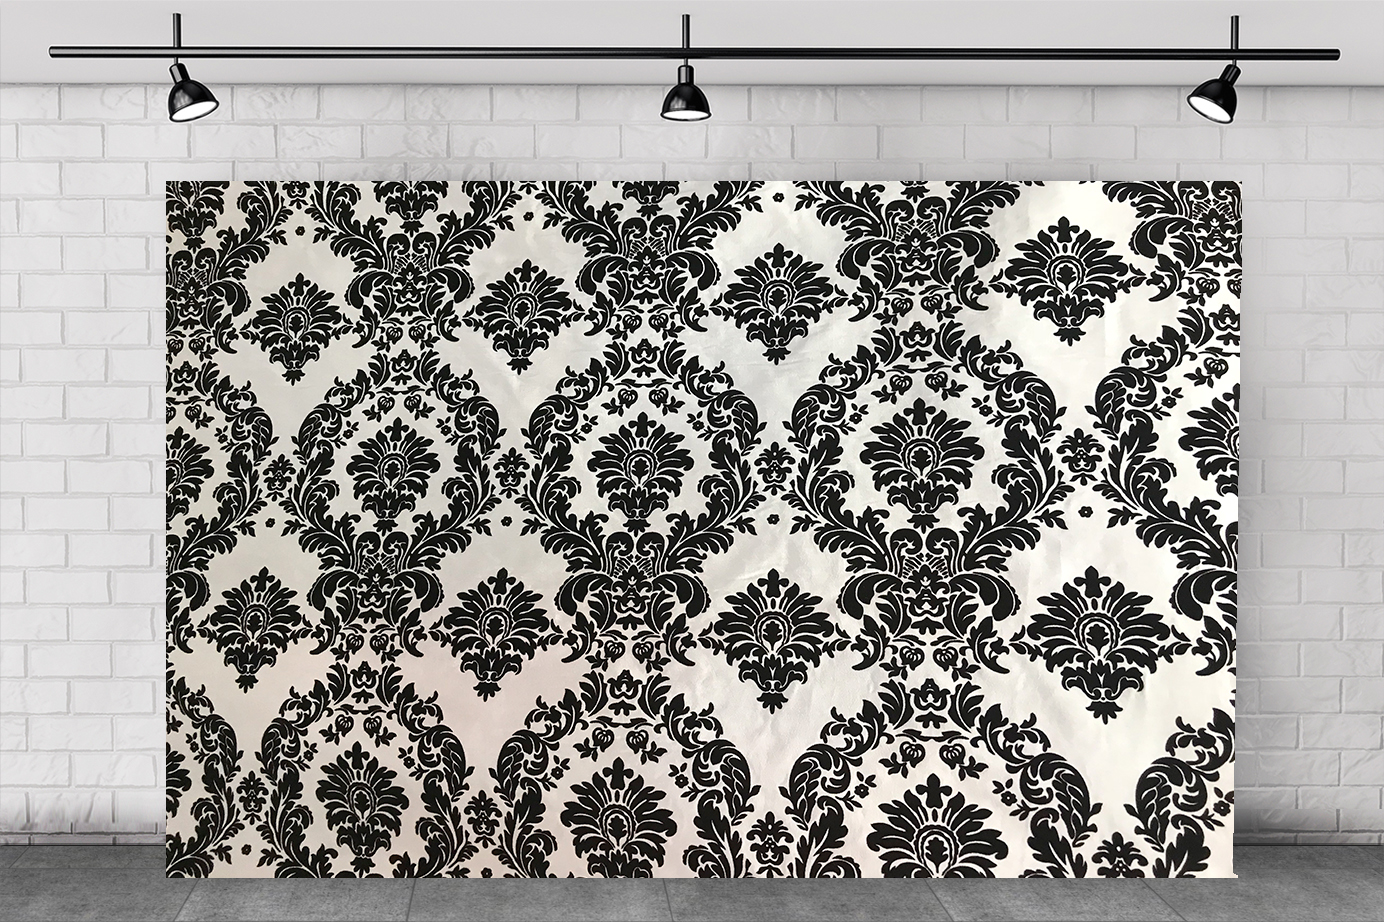 ELGENT PATTERN BACKDROP